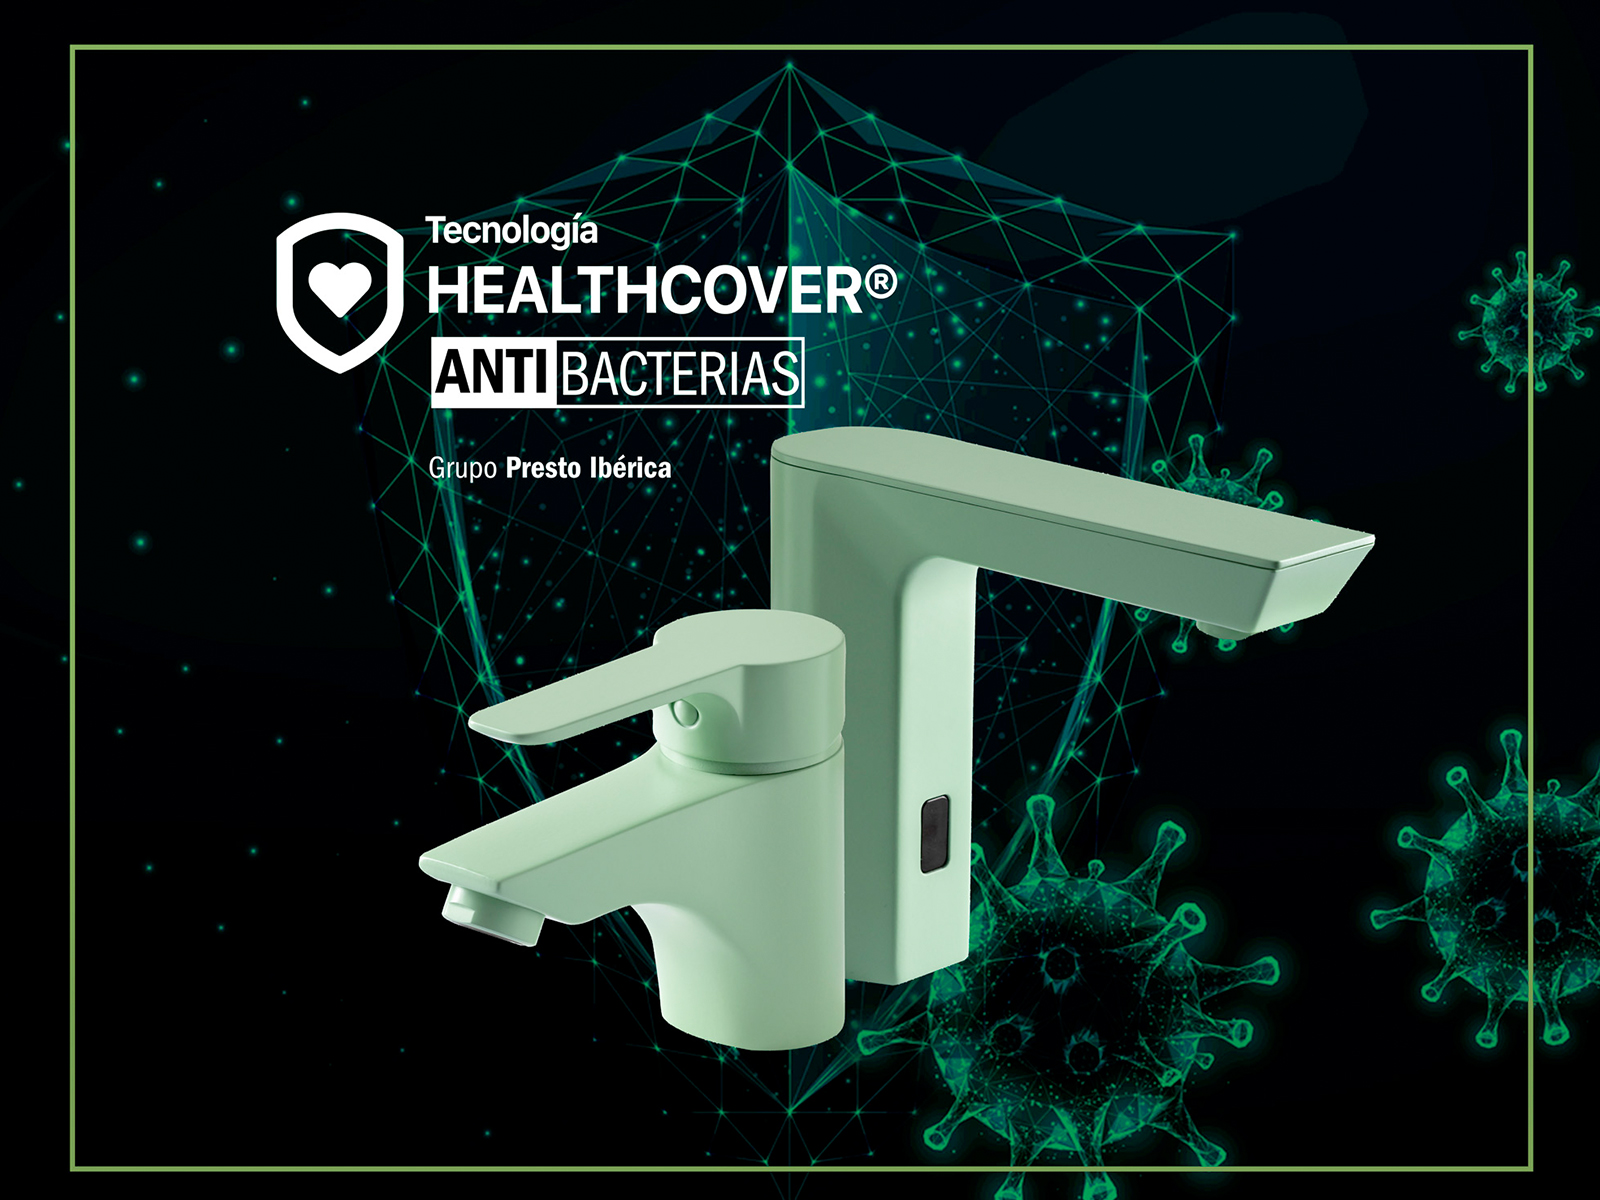 HealthCover® Technology by Presto Ibérica Group.